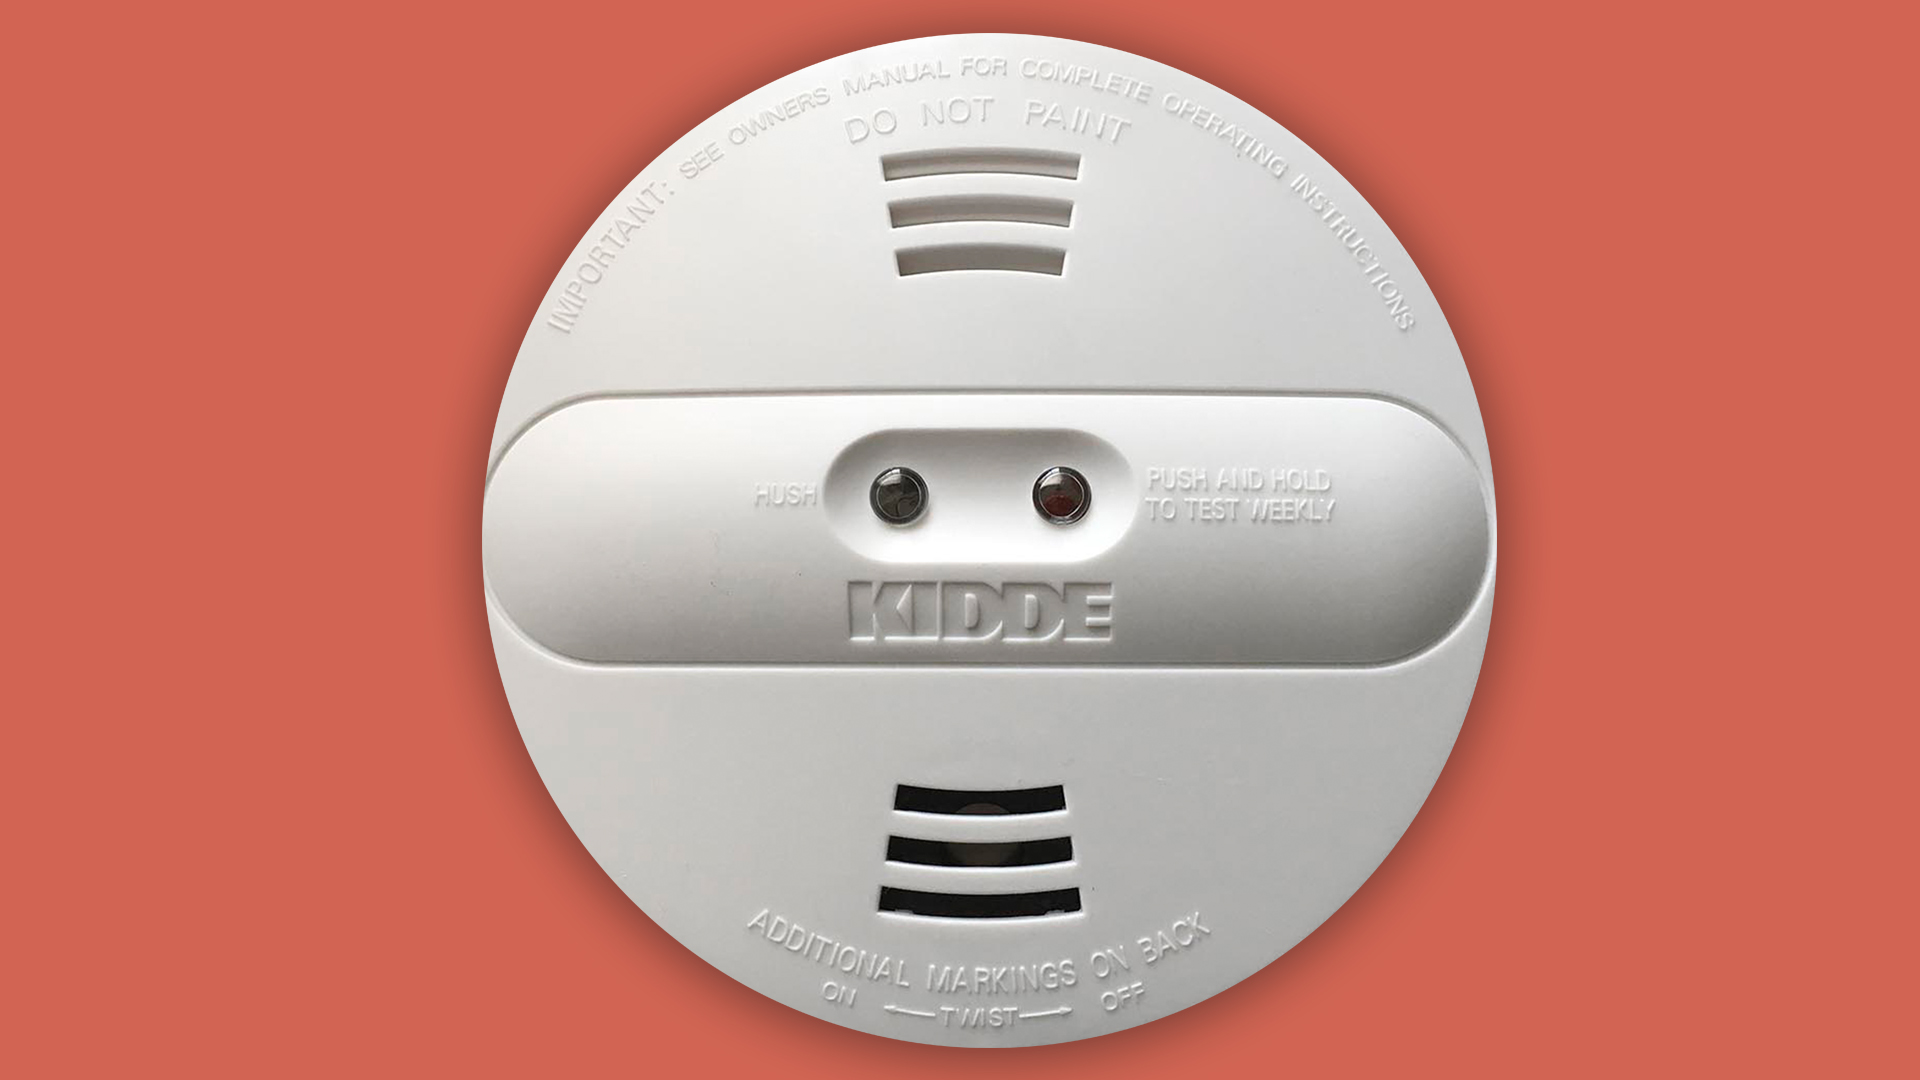 Kidde Smoke Alarms Recalled May Not Detect Presence Of Fire Alarm